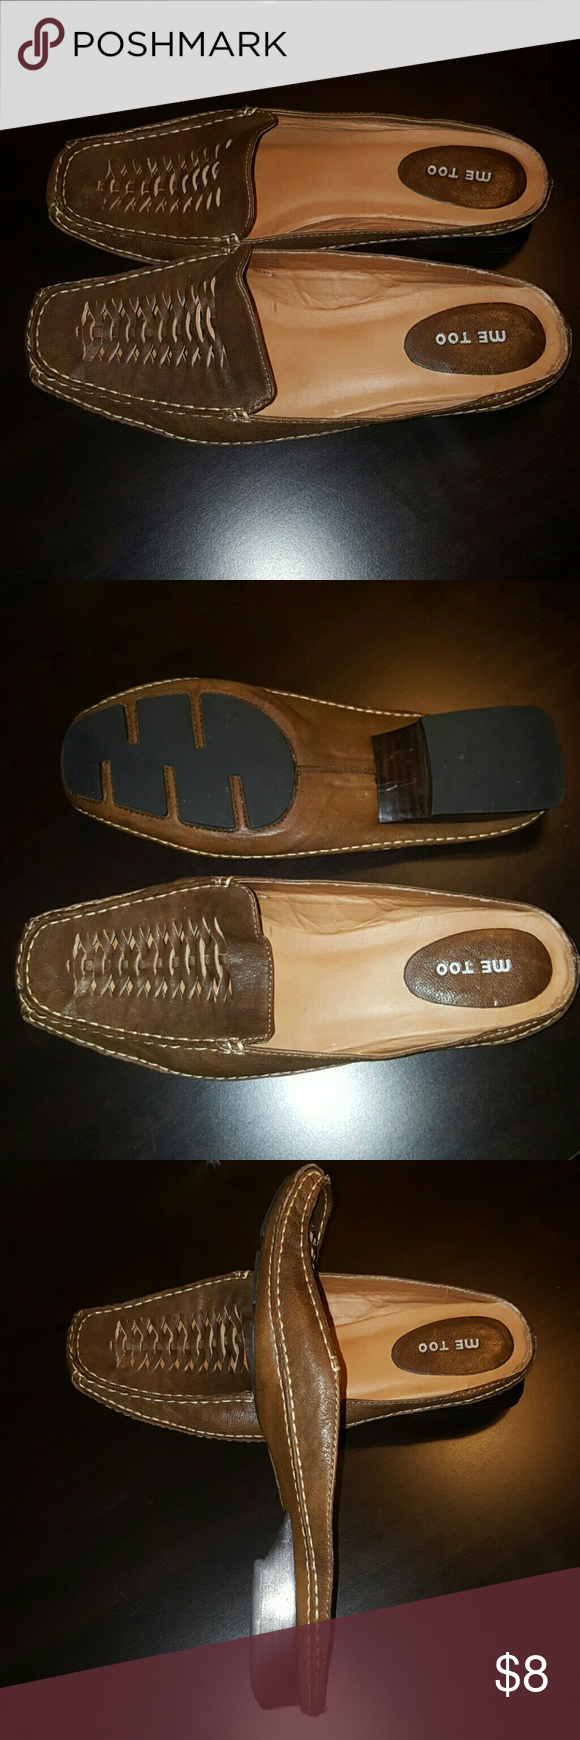 🆕 Brown Moccasin Slide Ons Slide on moccasins with non-slip backing. Very comfy and cute! Me Too Shoes